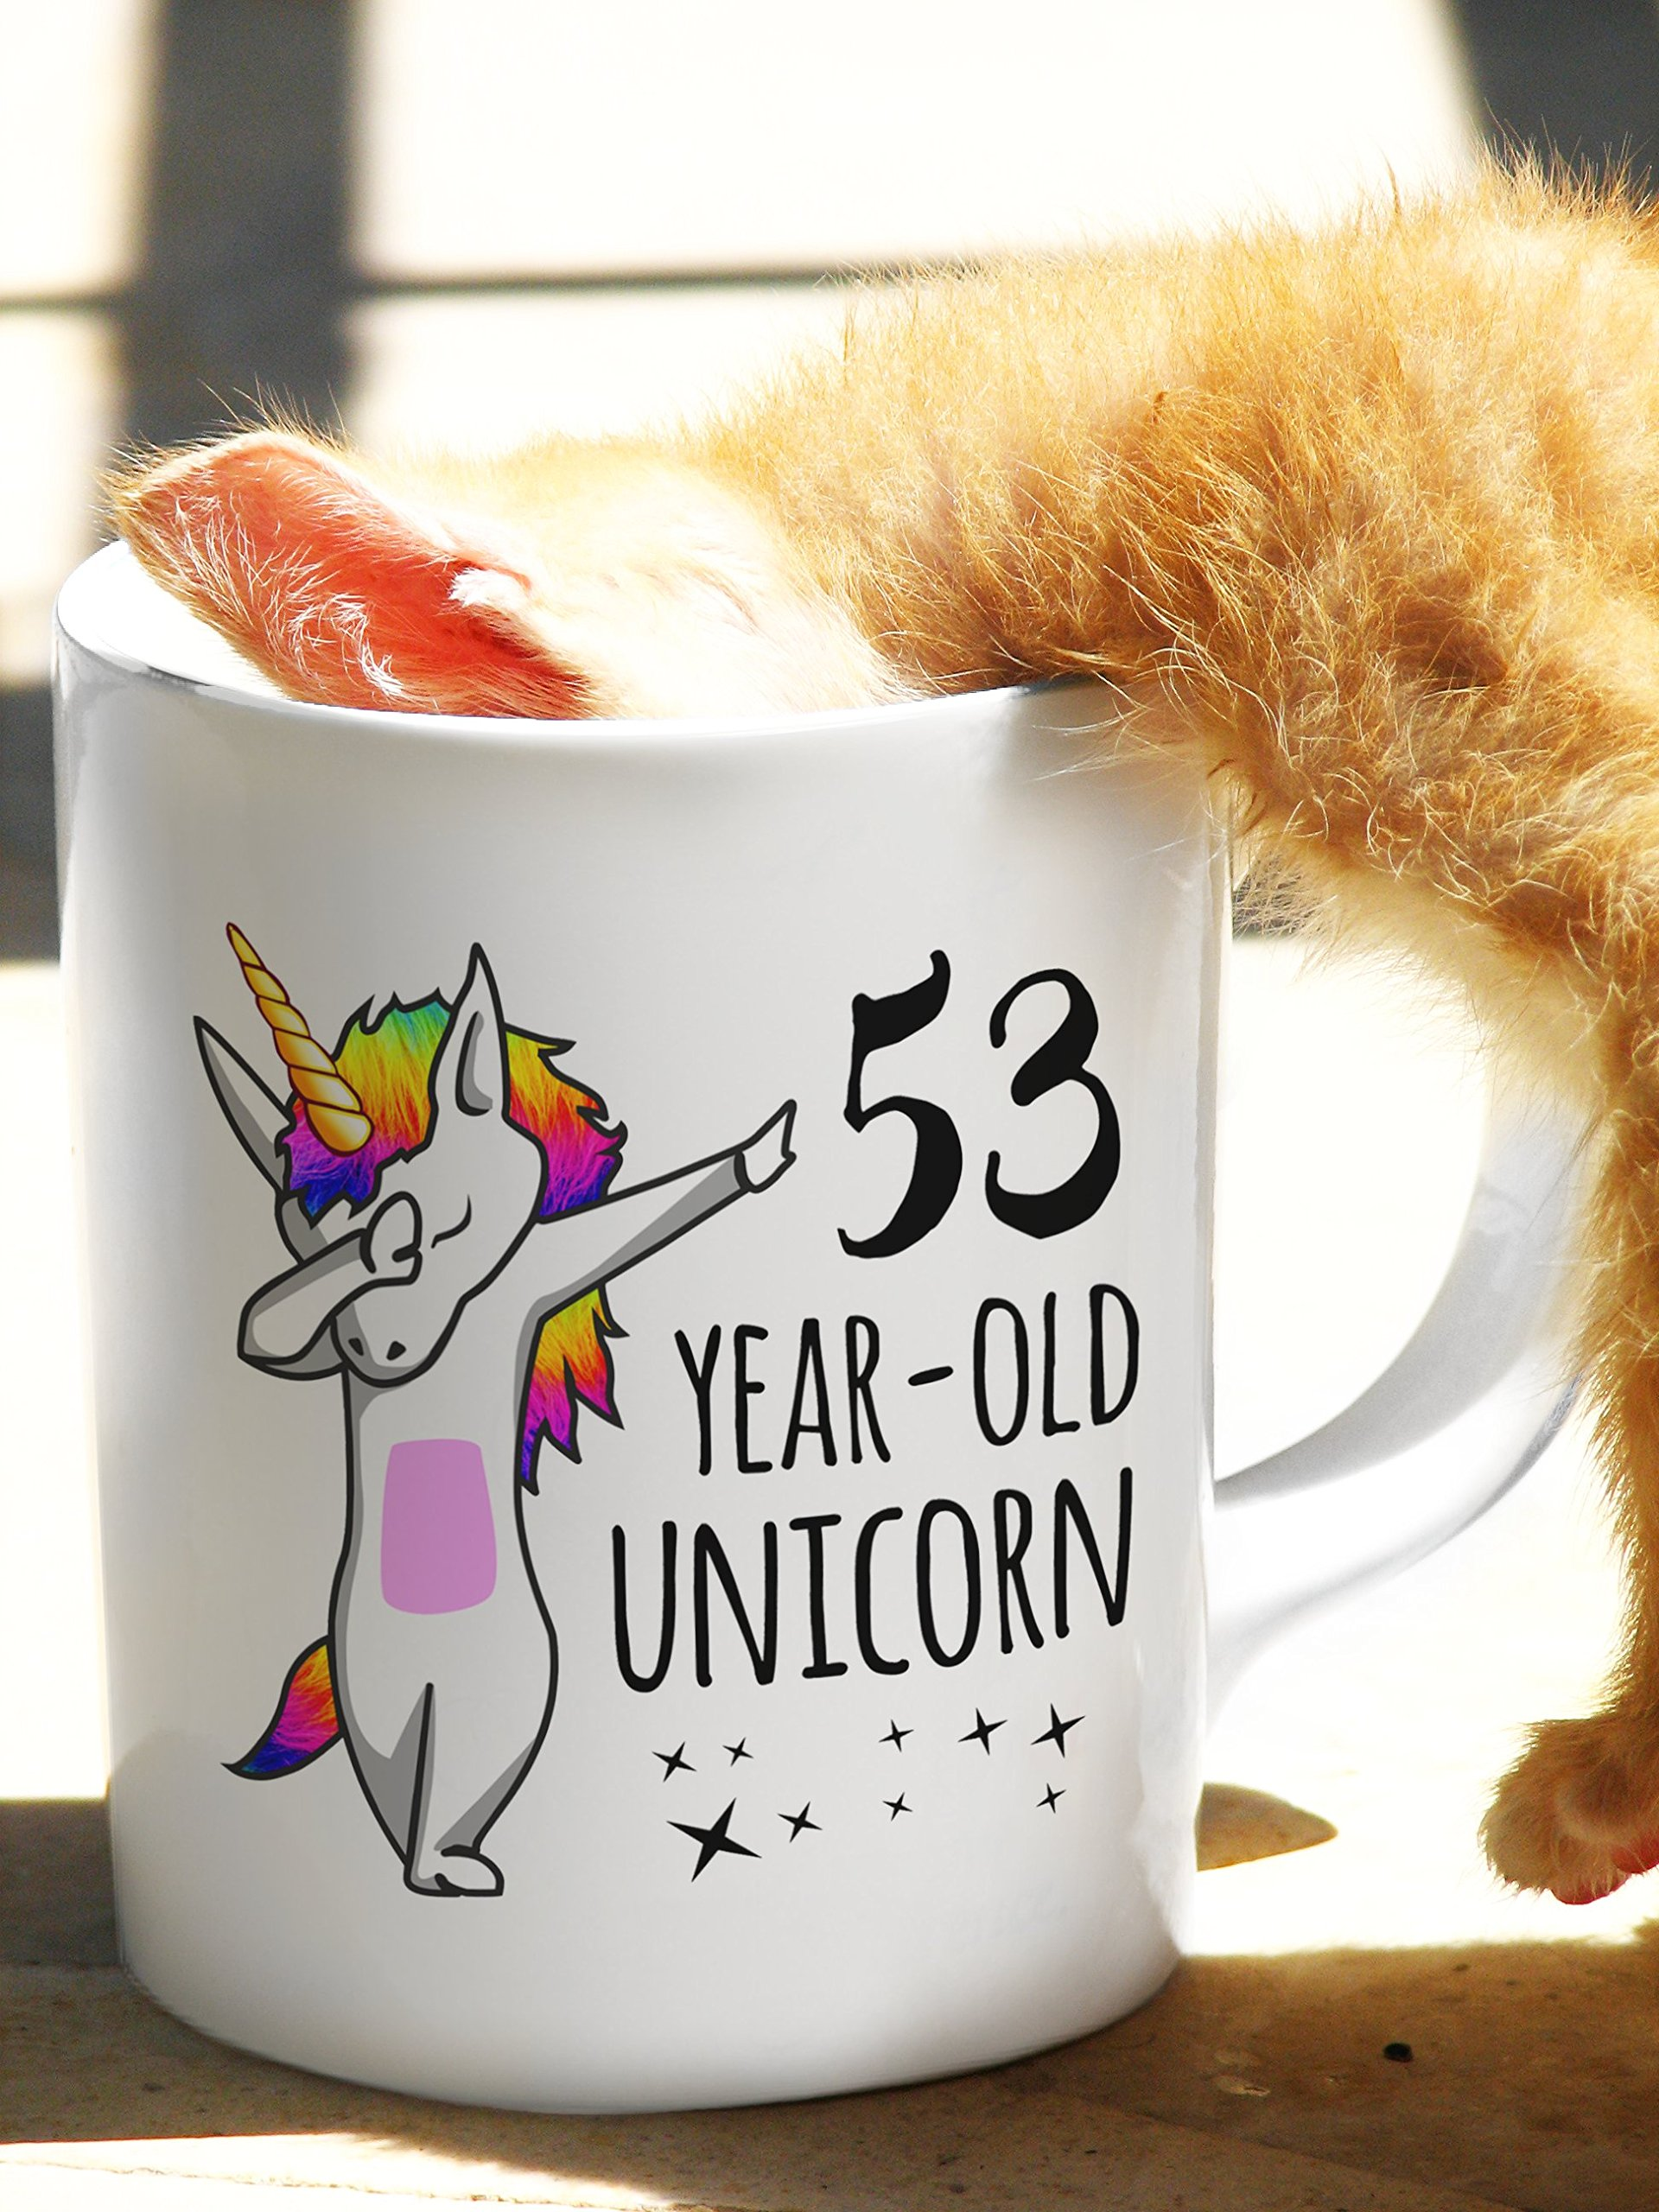 Fifty-Three-Year-Old Unicorn Dabbing Mug - Legends are Born in 1964 | 53rd Birthday & Anniversary Bday Gift - Life Begins At 53 | Believe in the Magical Rainbow Dab Hip-Hop Dance Pose by Unknown (Image #5)